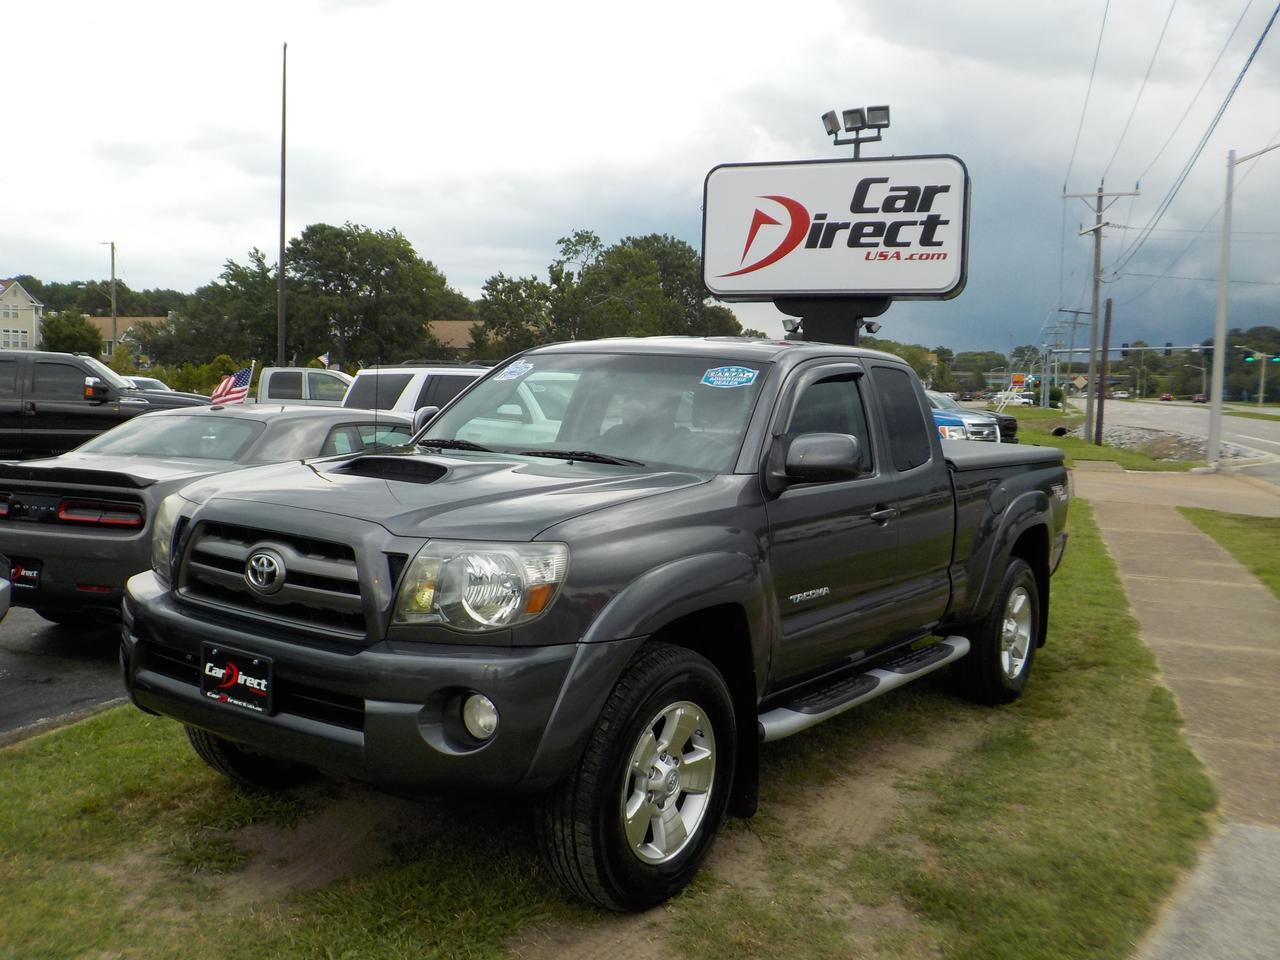 2010 TOYOTA TACOMA SR5 TRD SPORT EXTENDED CAB 4X4, HARD TONNEAU COVER, RUNNING BOARDS, TOW, DAYTIME RUNNING LIGHTS! Virginia Beach VA